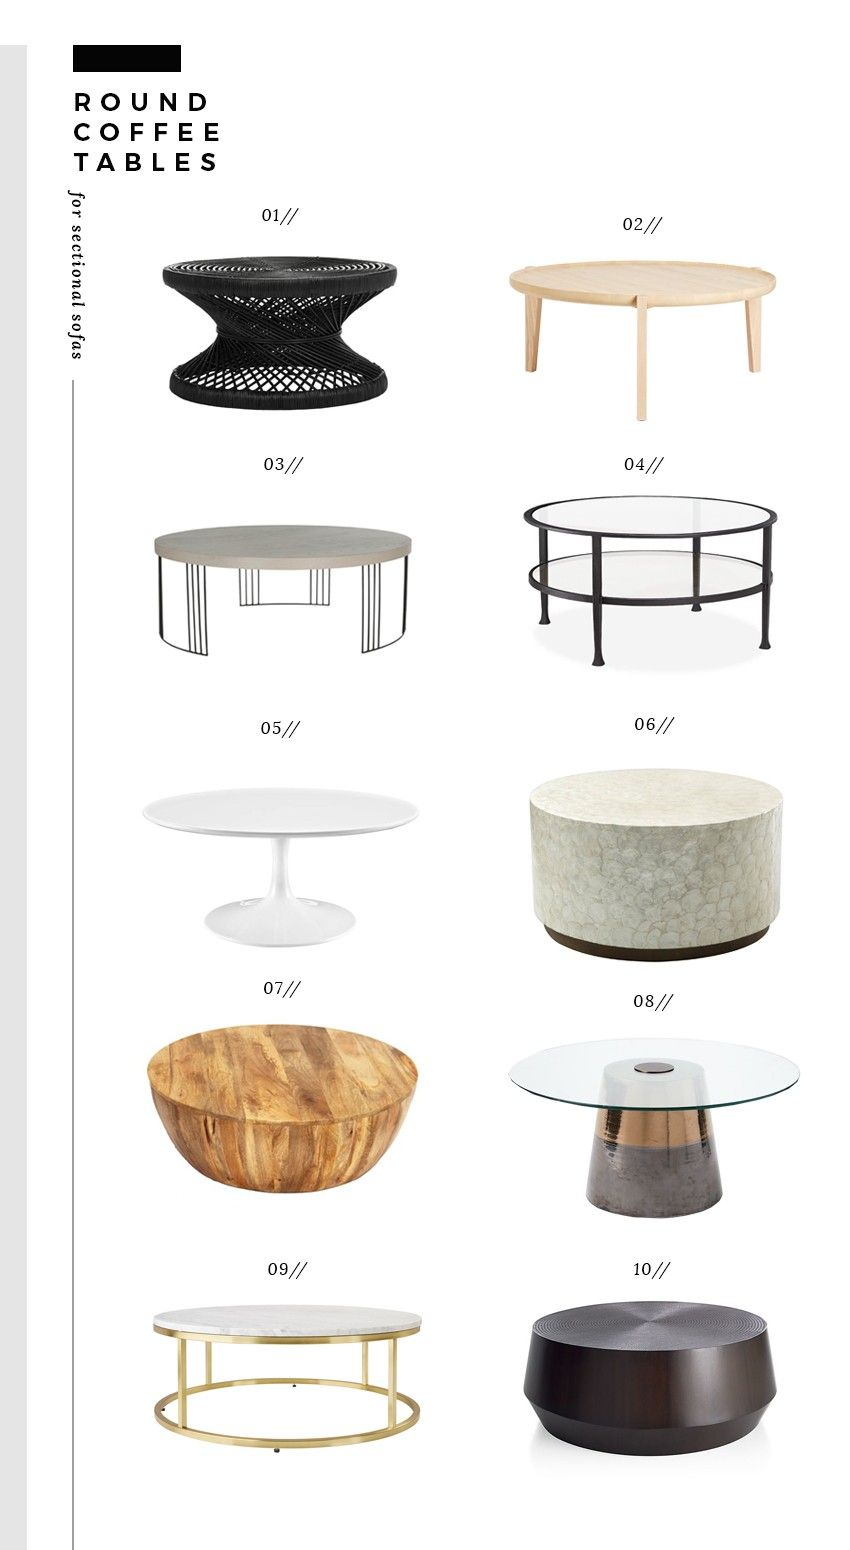 Pairing Sectional Sofas And Coffee Tables Room For Tuesday Coffee Table Sectional Coffee Table Round Coffee Table Best coffee table for sectional